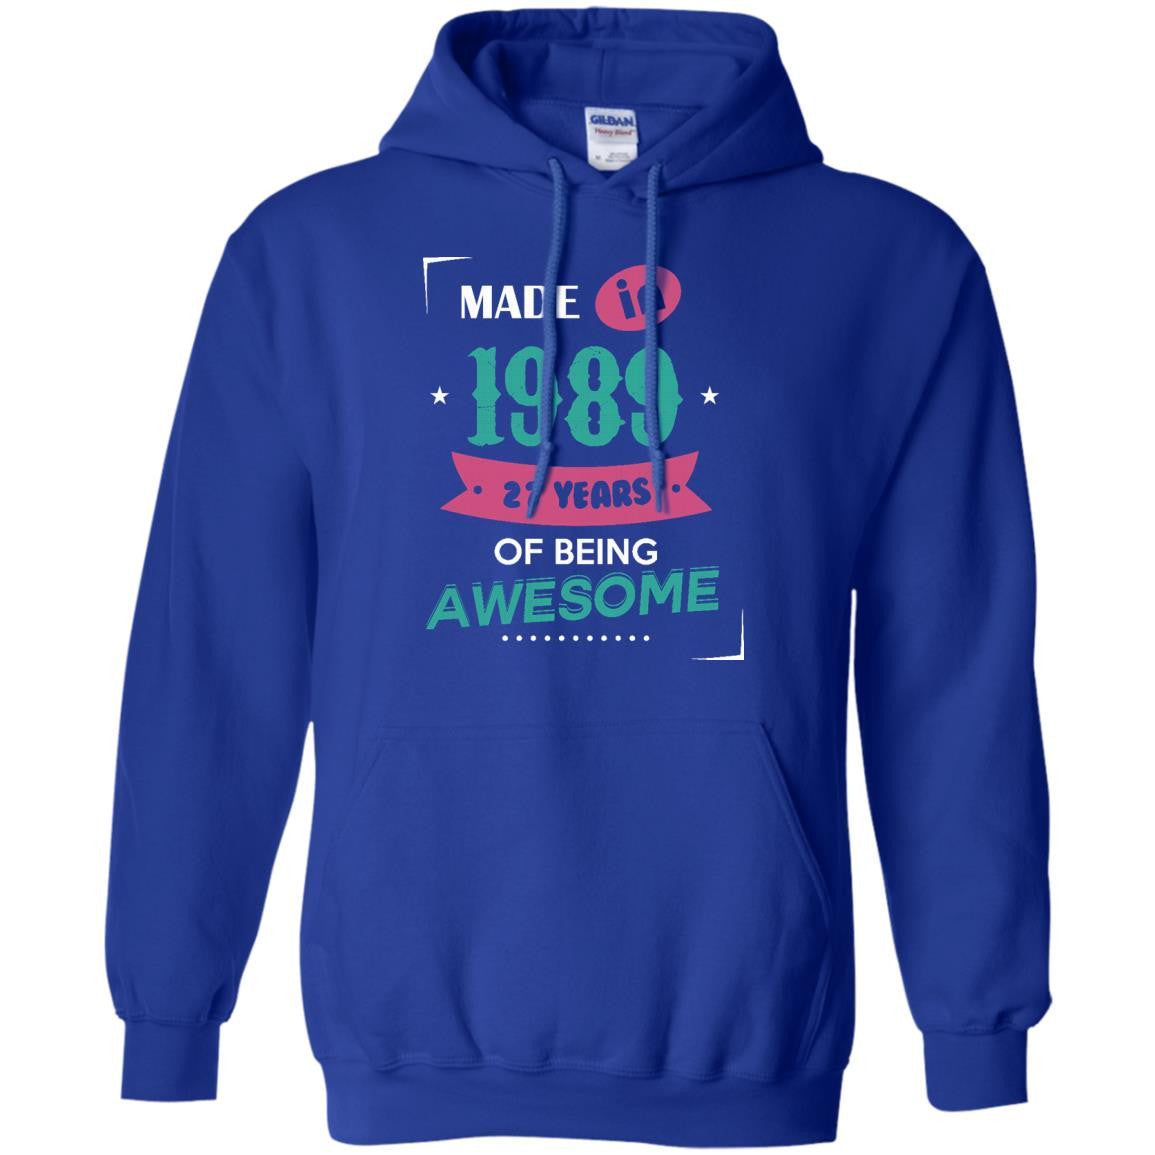 1989 Shirts Made In 1989 Of Being Awesome T-shirts Hoodies Sweatshirts